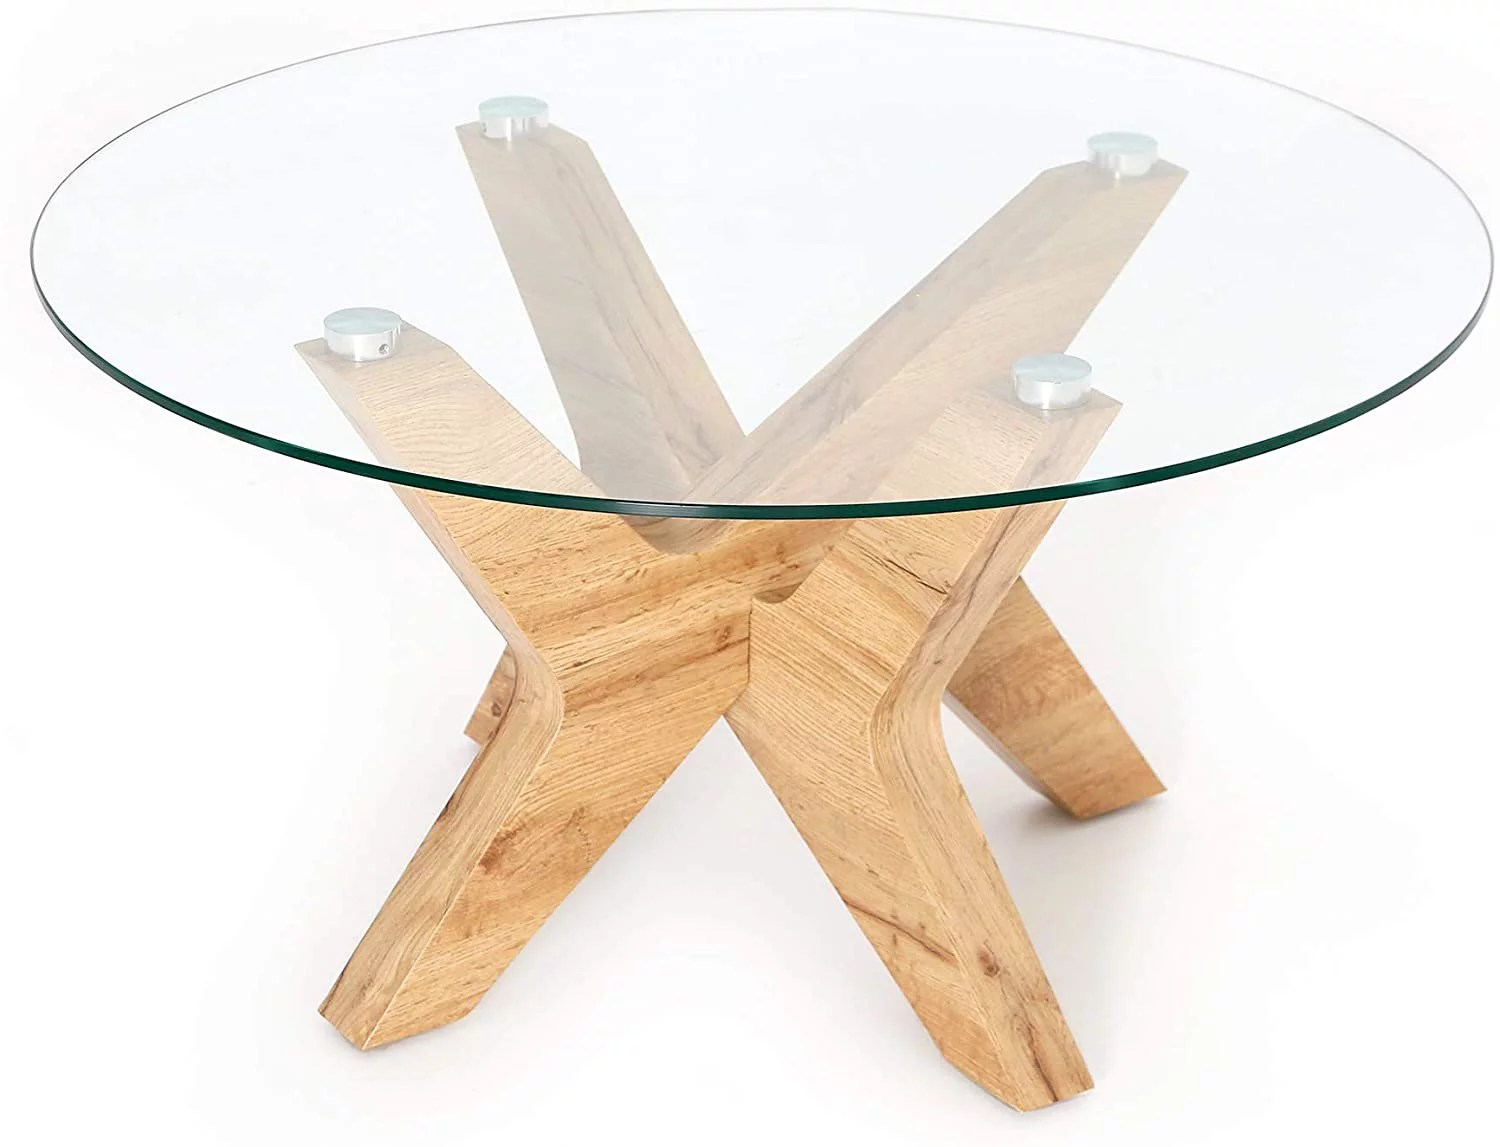 ivinta glass coffee table round industrial design with wood frame for living room home dining room 32inch